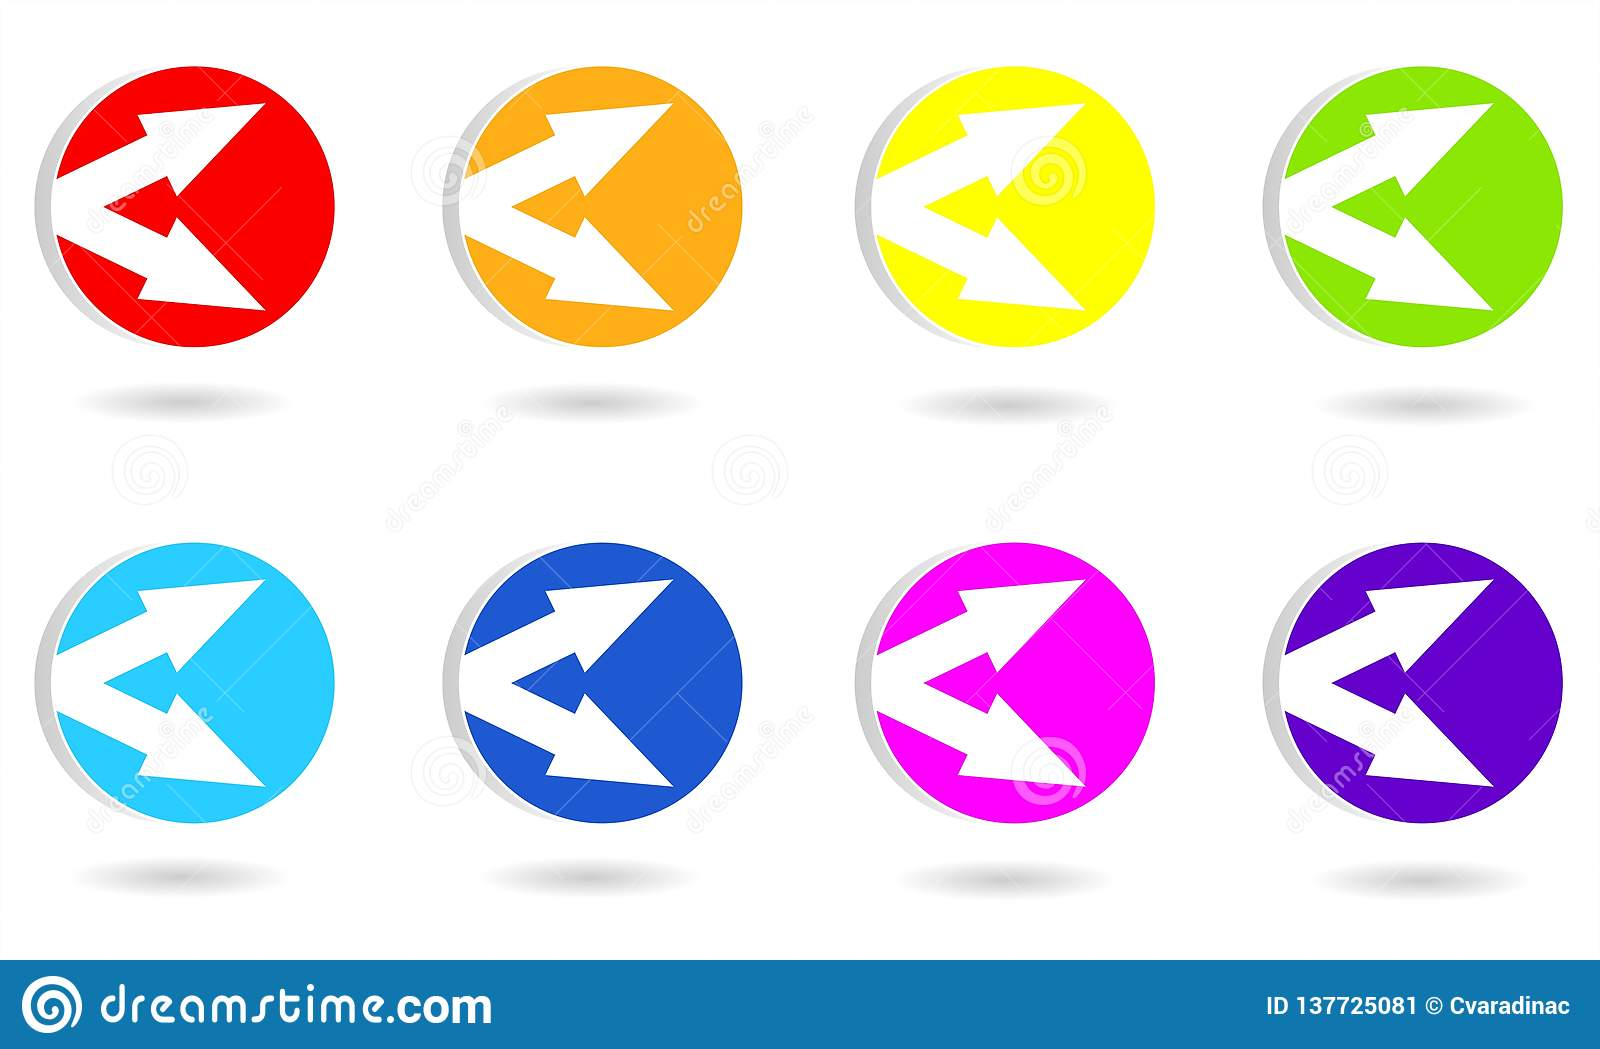 Set of circle icons or buttons with arrows.